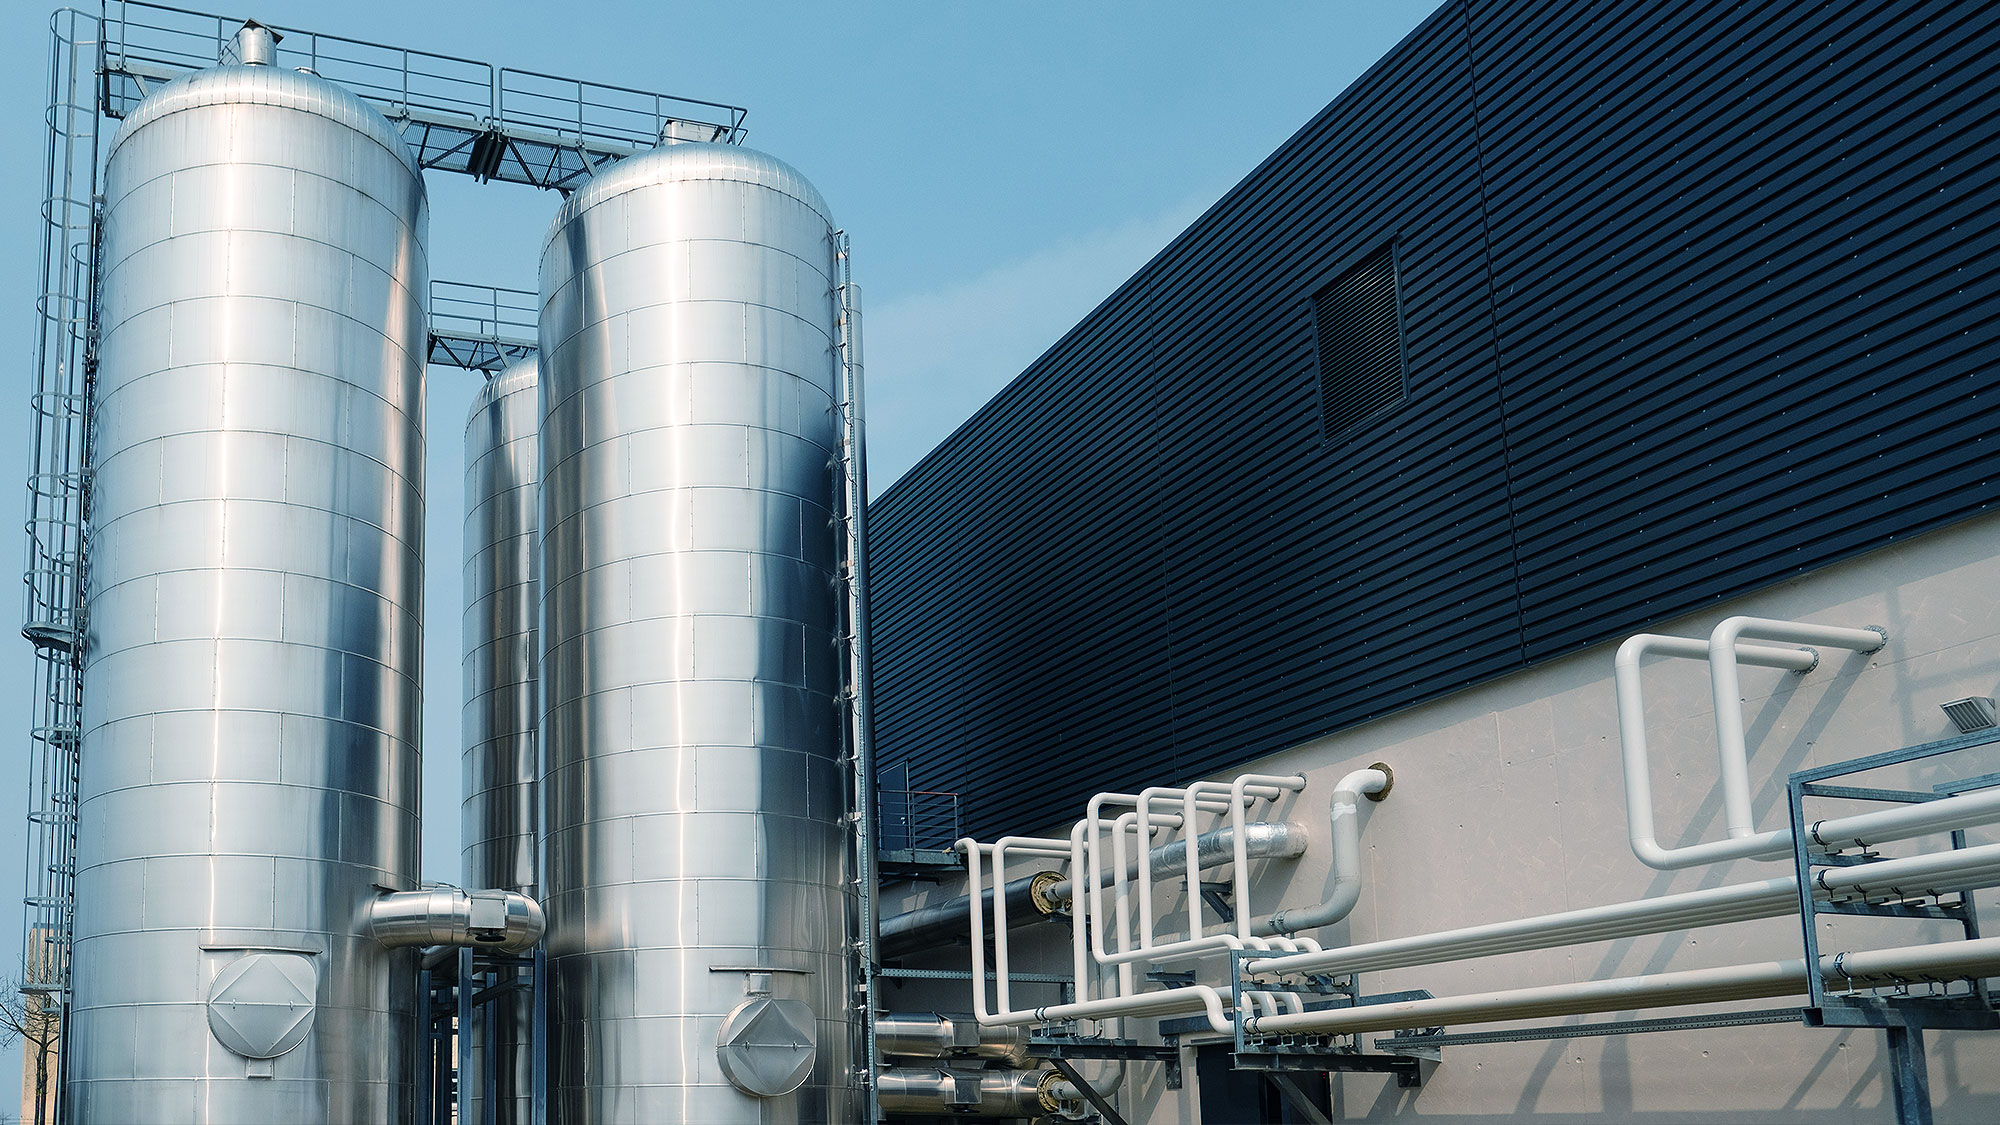 Outstanding: the storage towers of the combined heat and power (CHP) plant